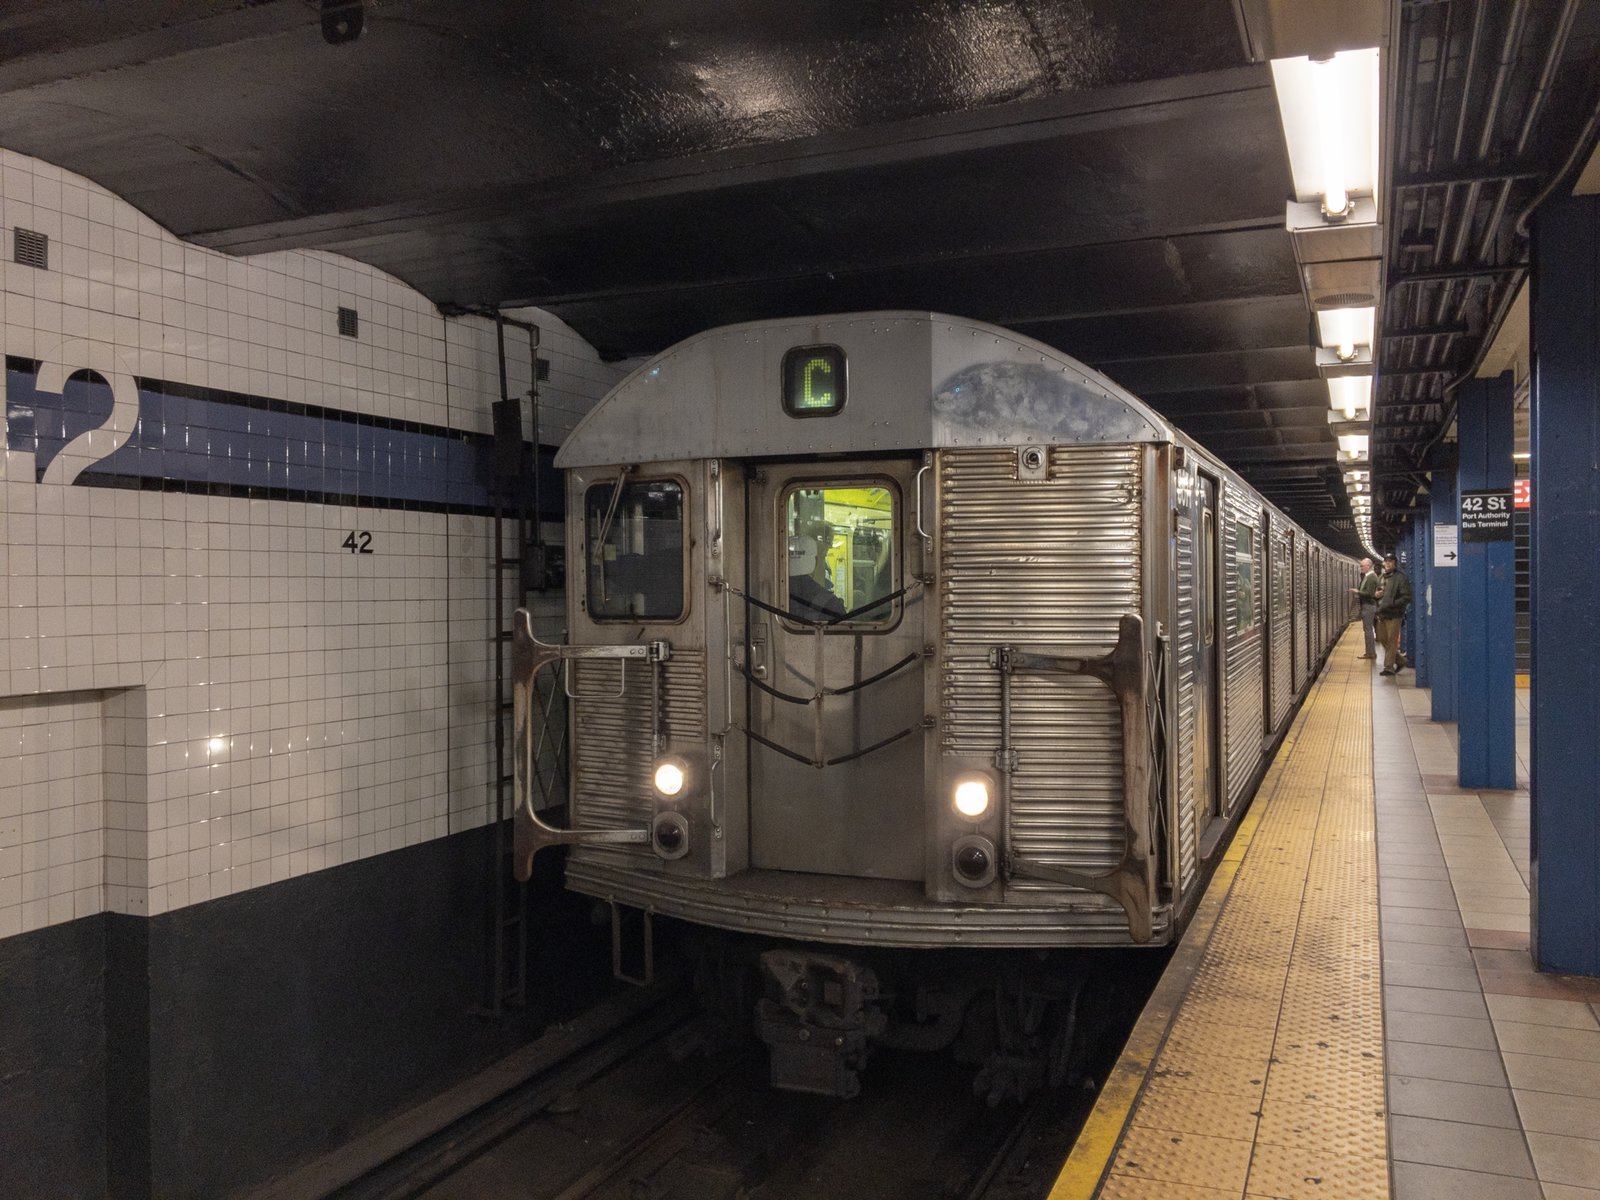 R32 C Train at 42 St